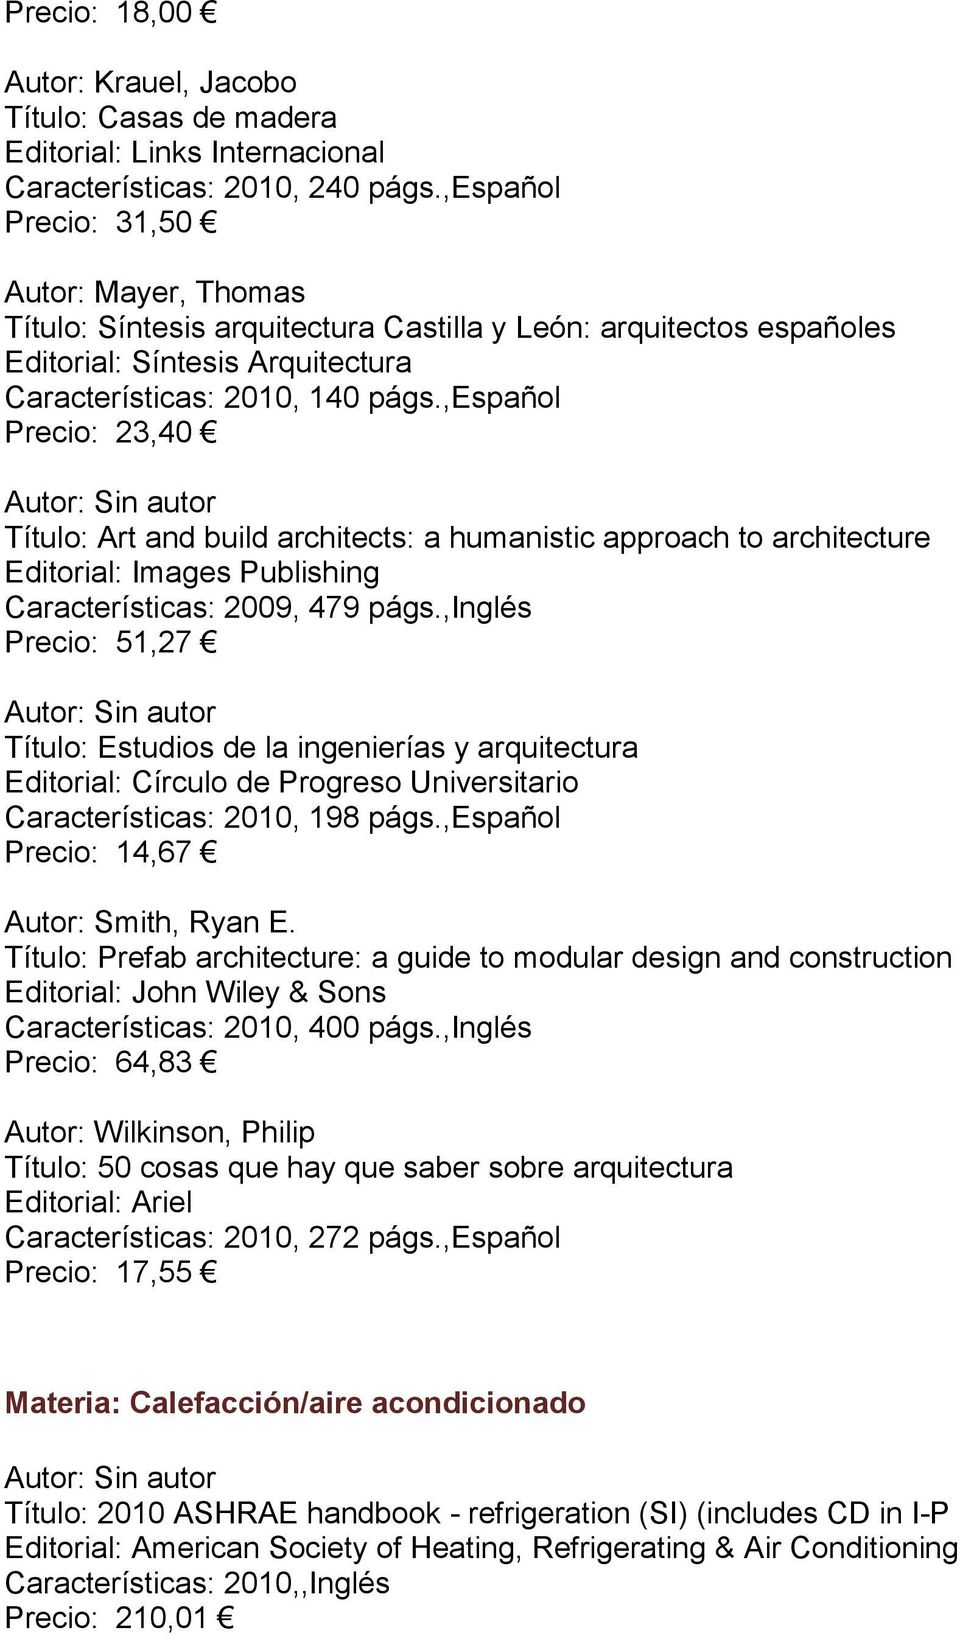 ,español Precio: 23,40 Autor: Sin autor Título: Art and build architects: a humanistic approach to architecture Editorial: Images Publishing Características: 2009, 479 págs.